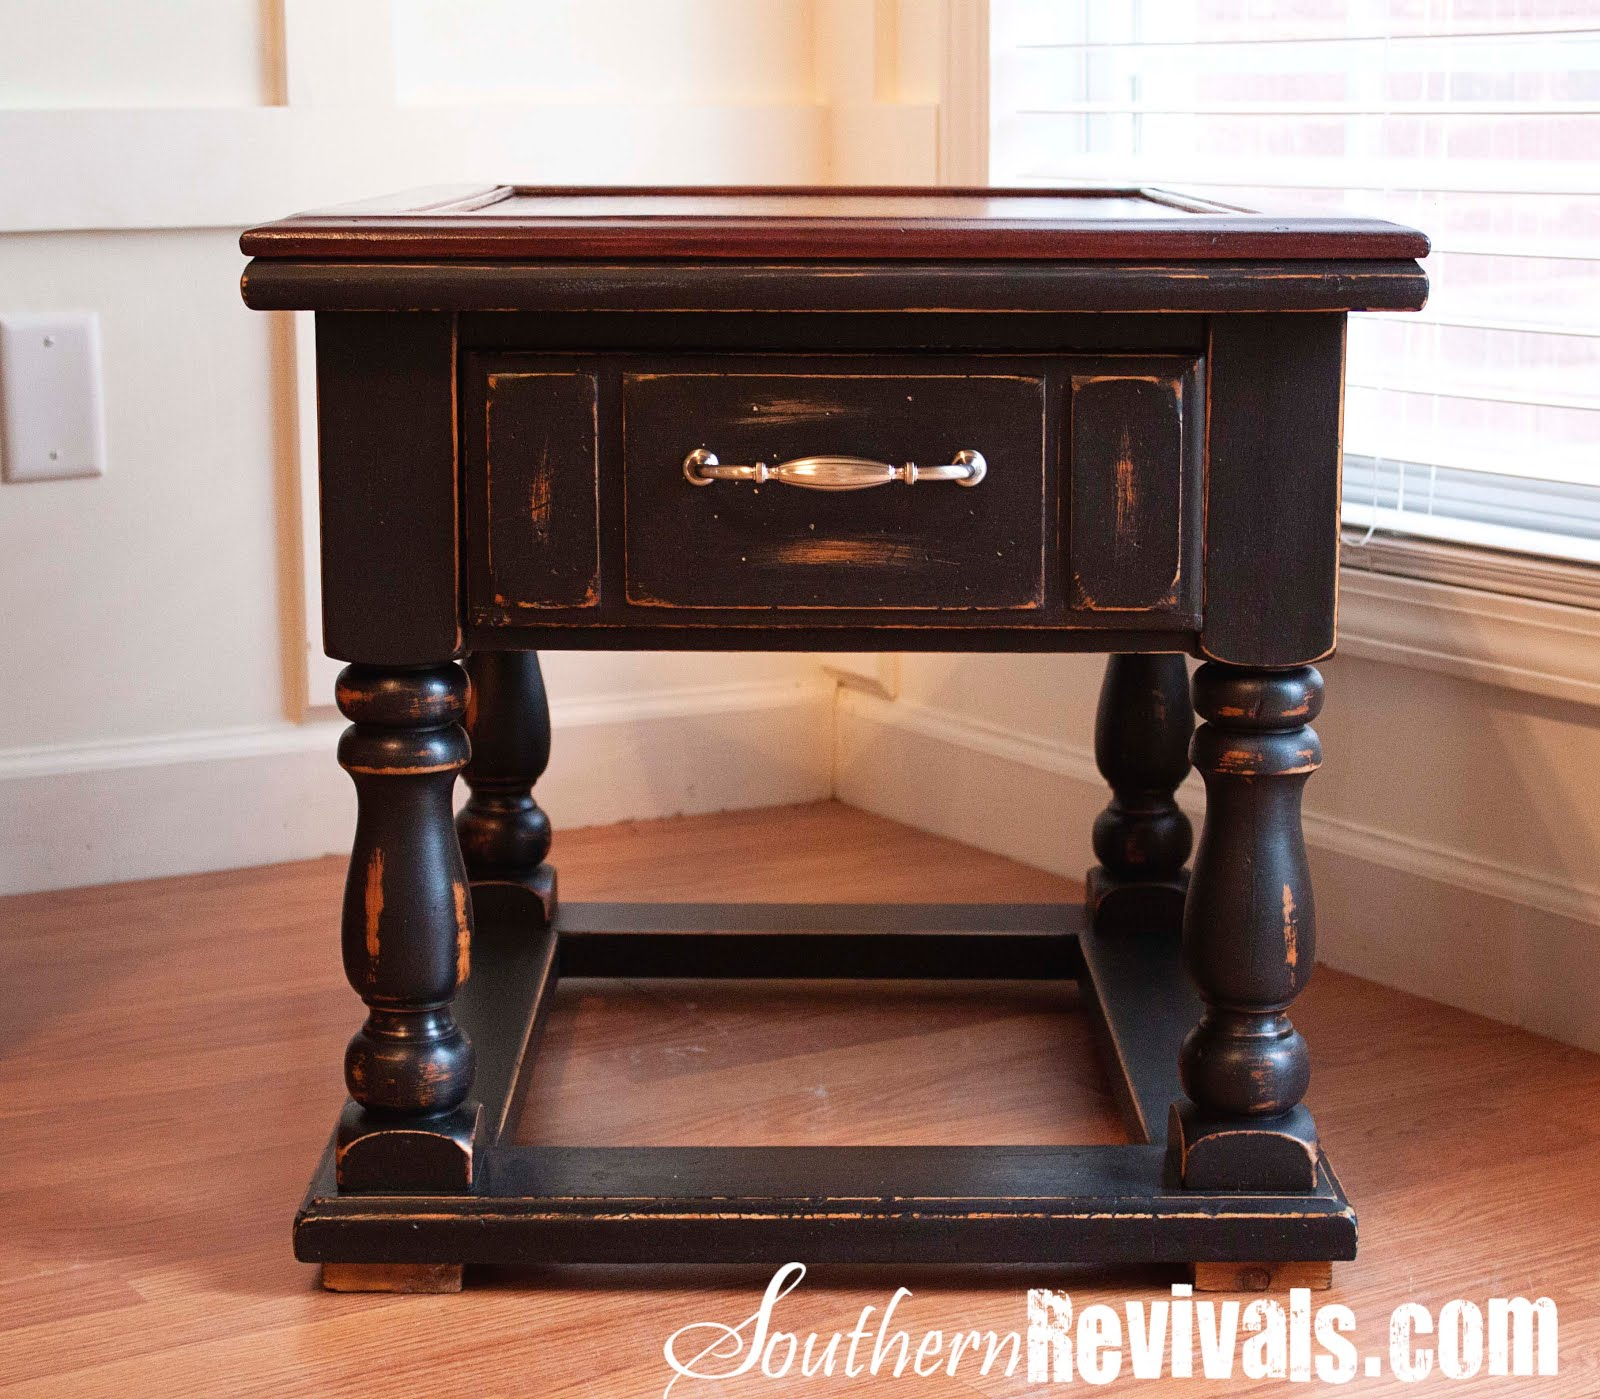 Pottery Barn Inspired Coffee Table & End Table Makeover Southern